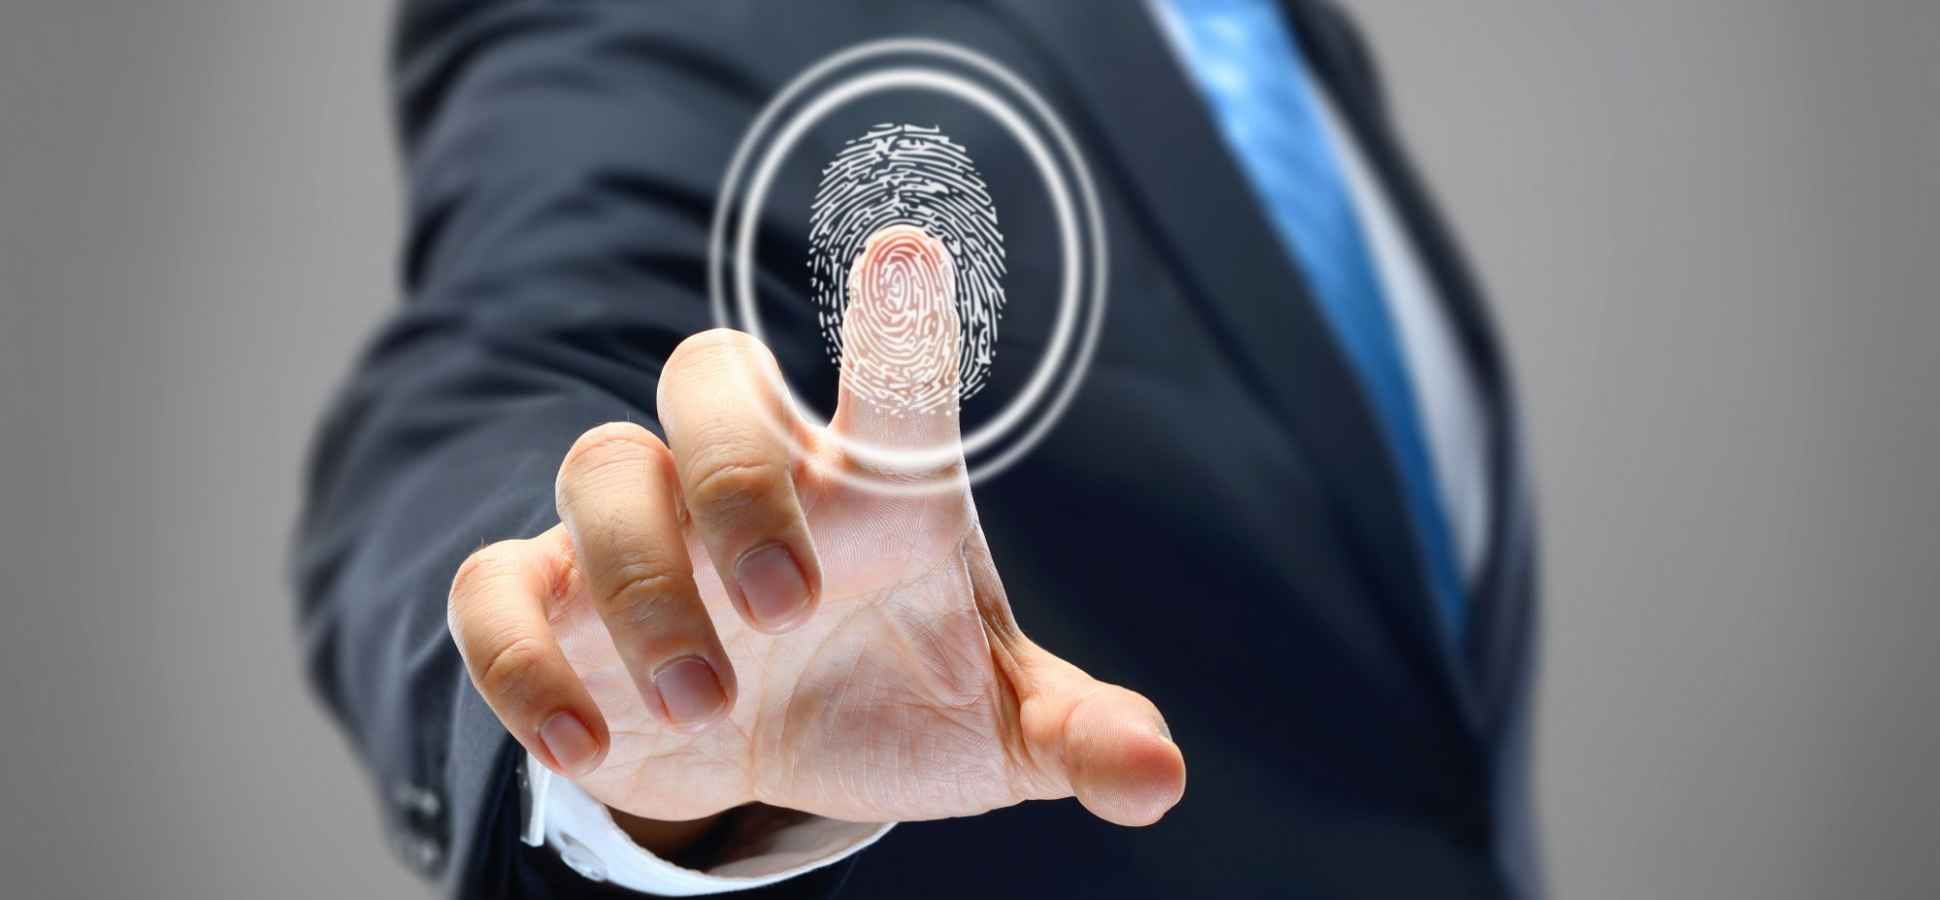 Why Scanning Your Fingerprint Could Cost You Your Privacy   Inc com